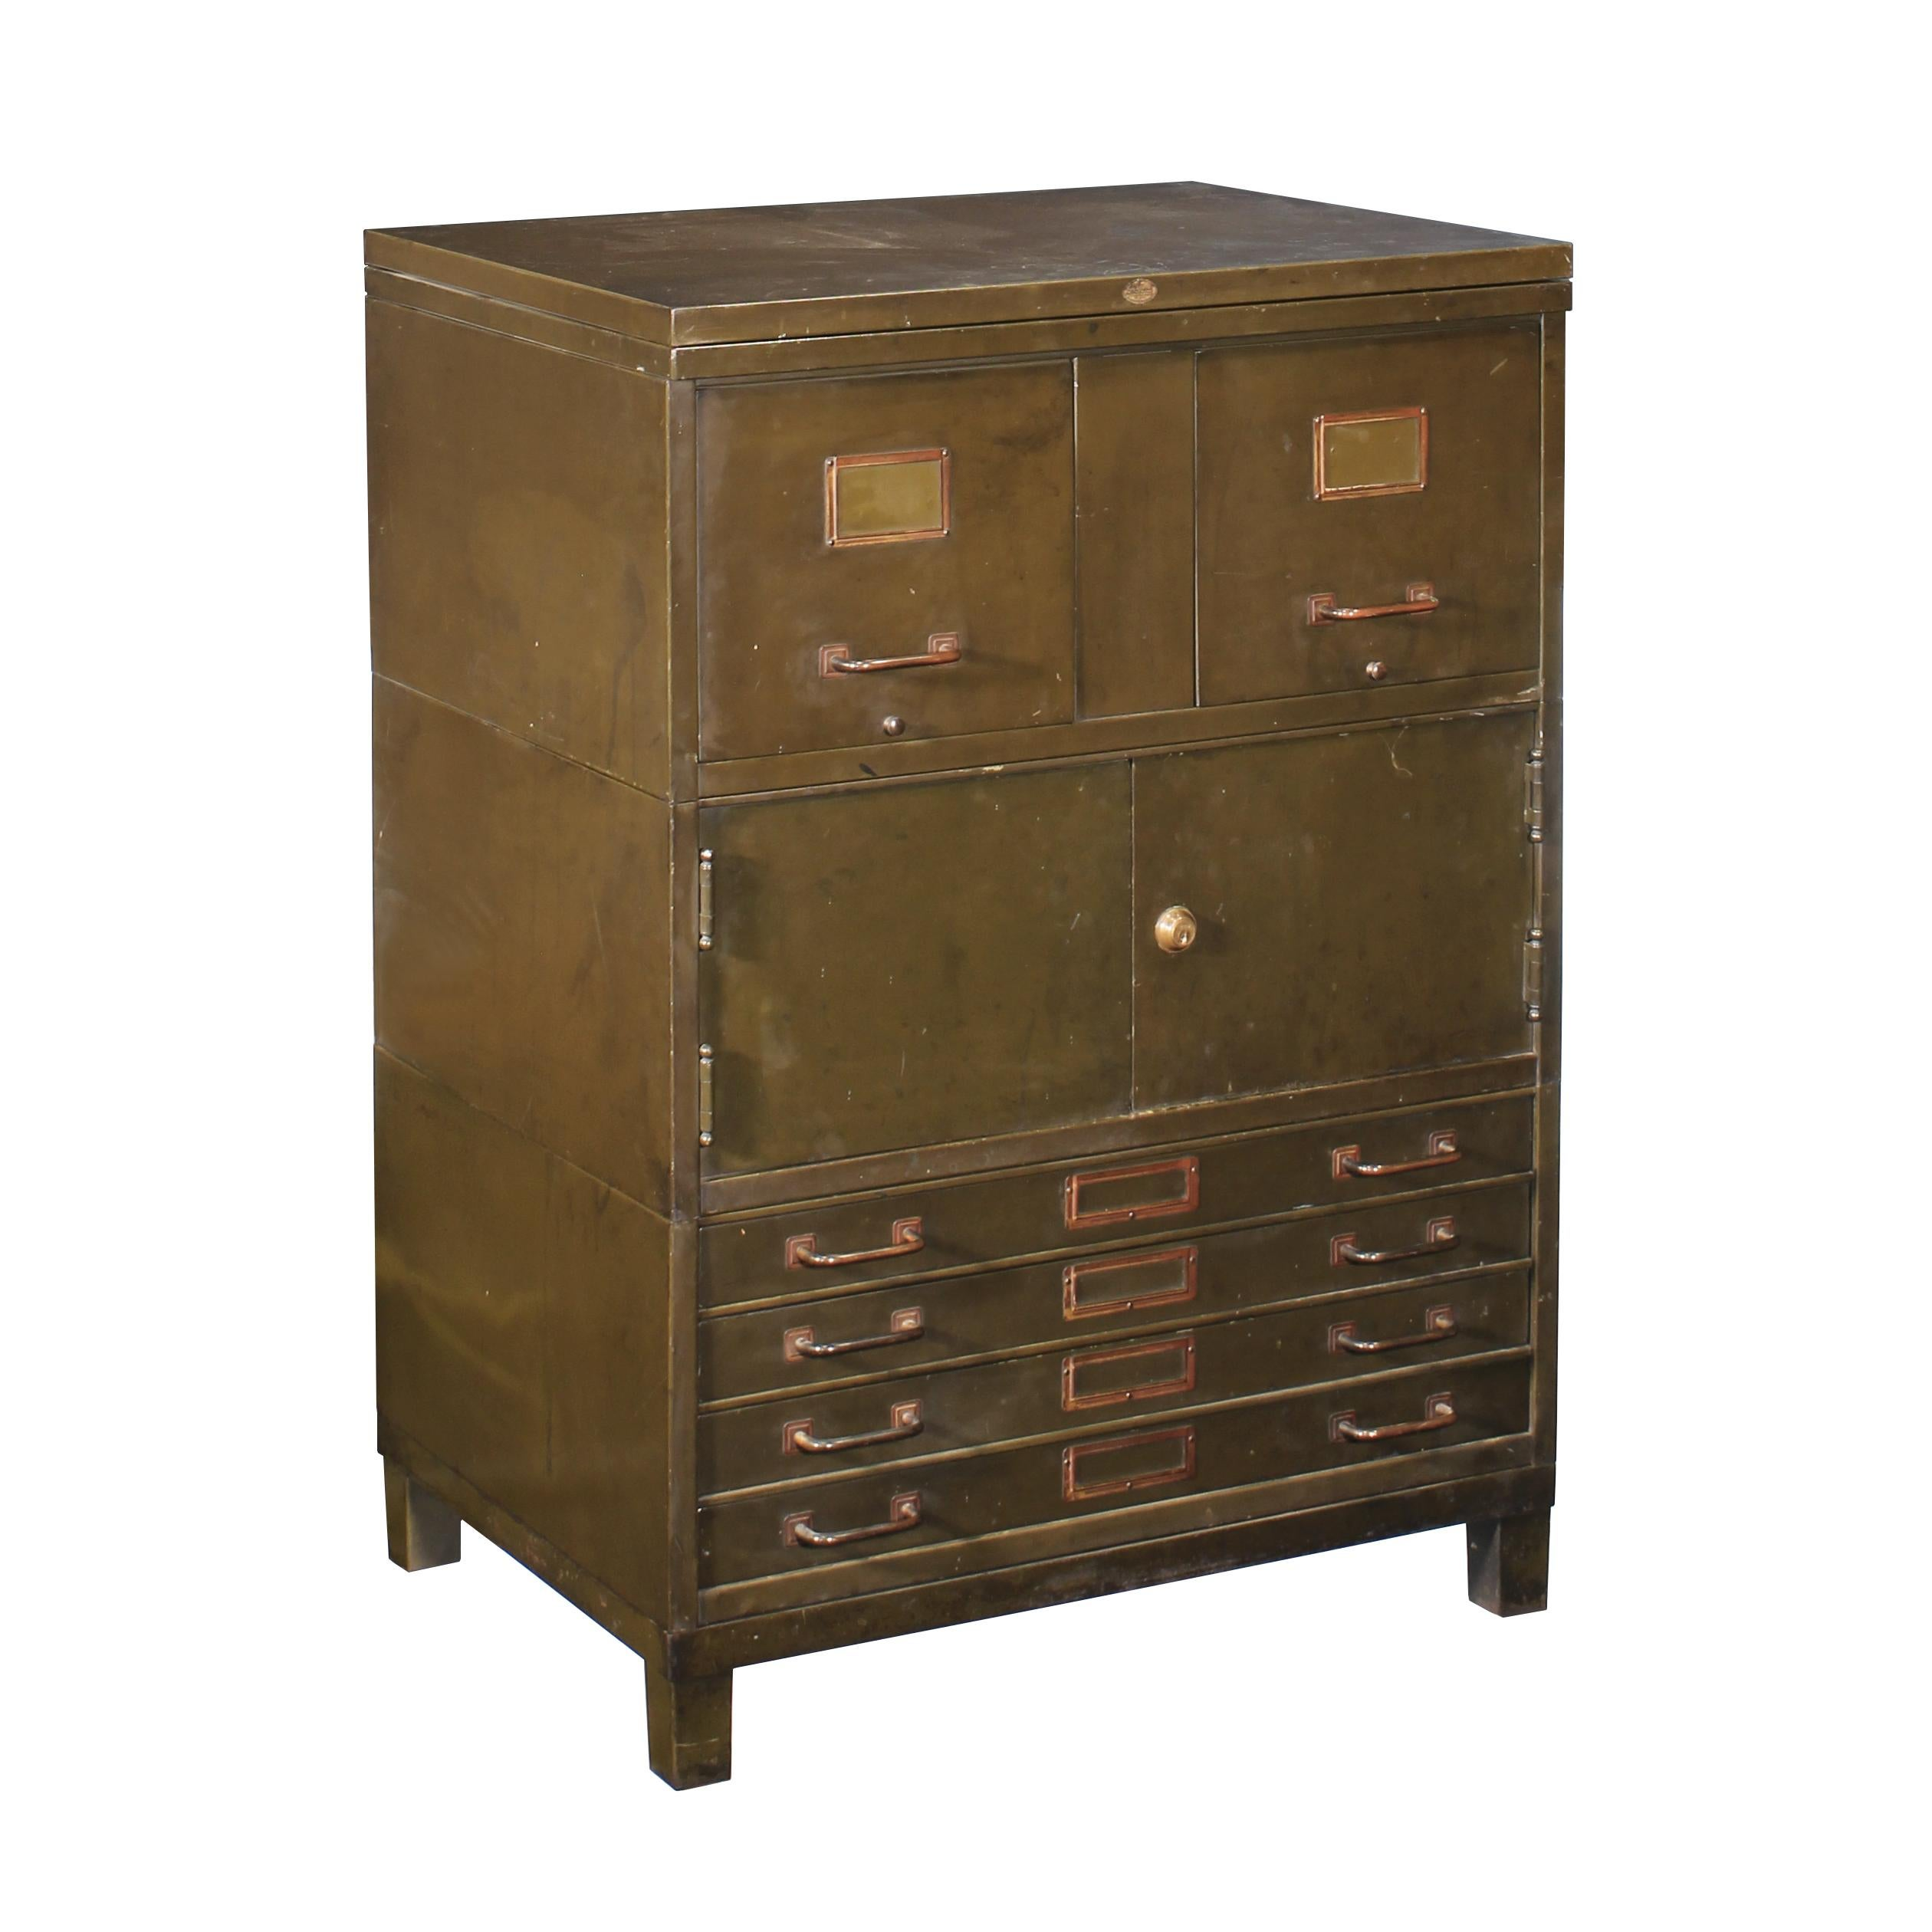 Vintage Distressed Wooden Flat File Factory Storage Cabinet At 1stdibs